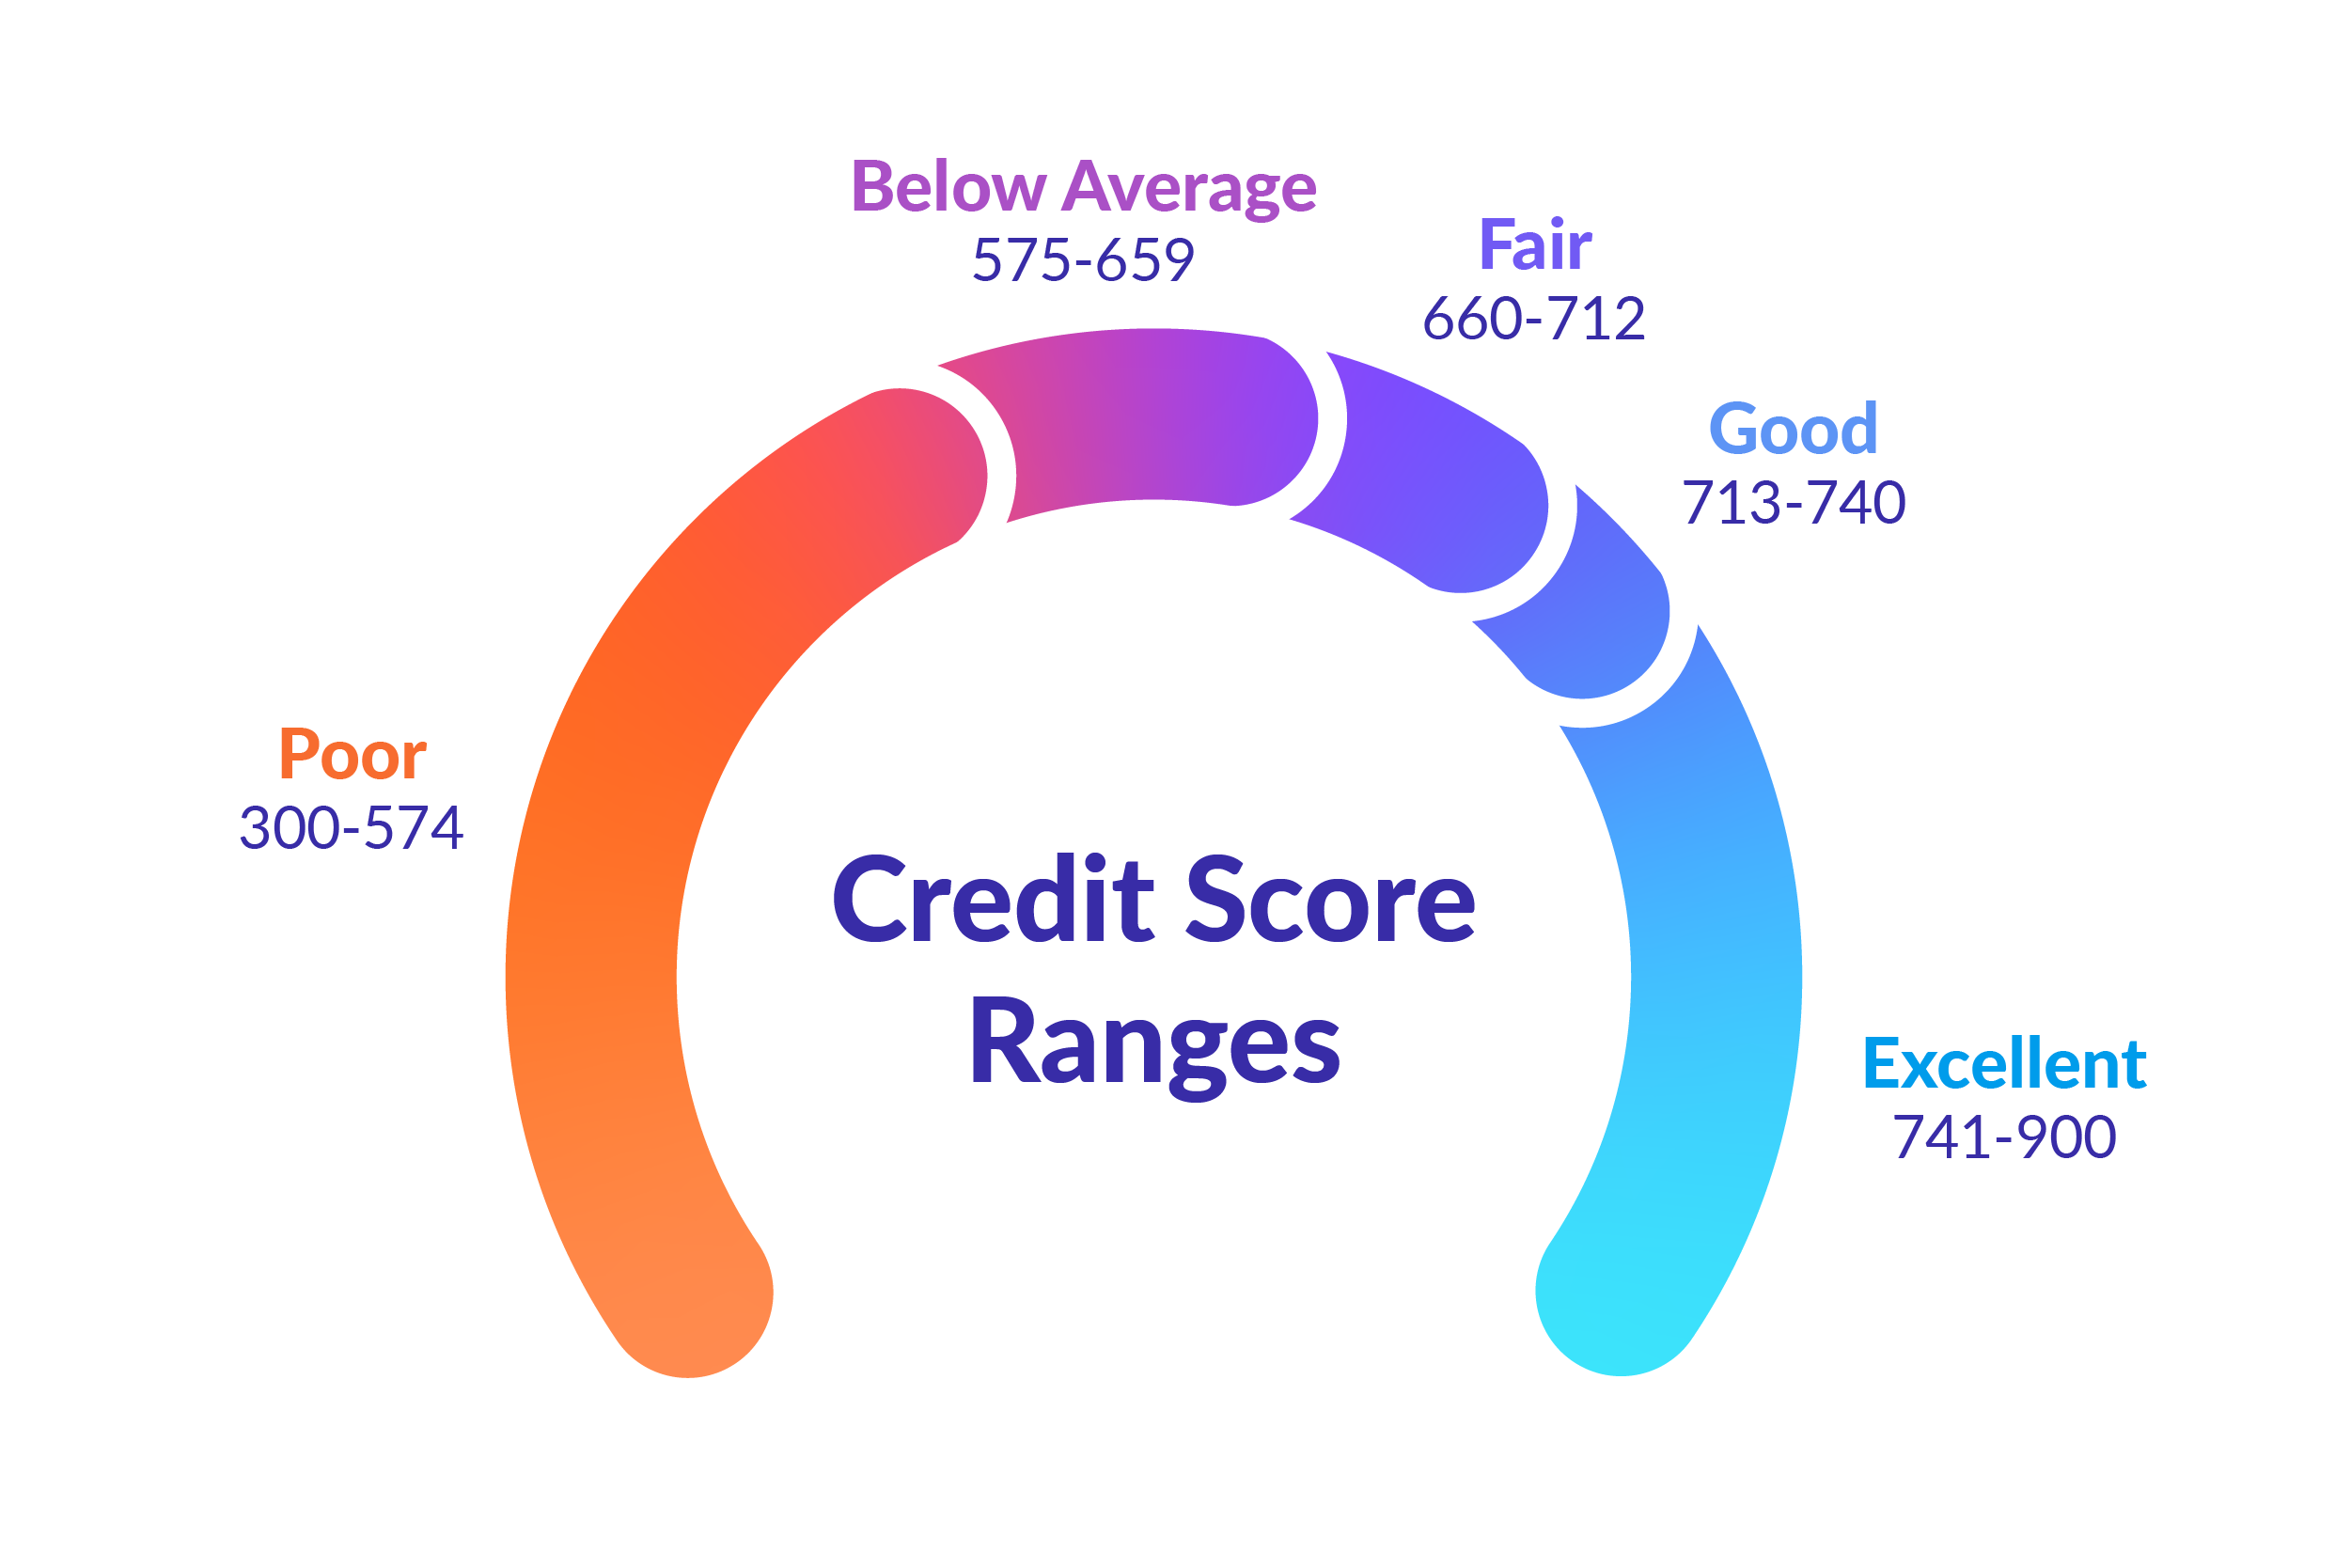 Credit score ranges.